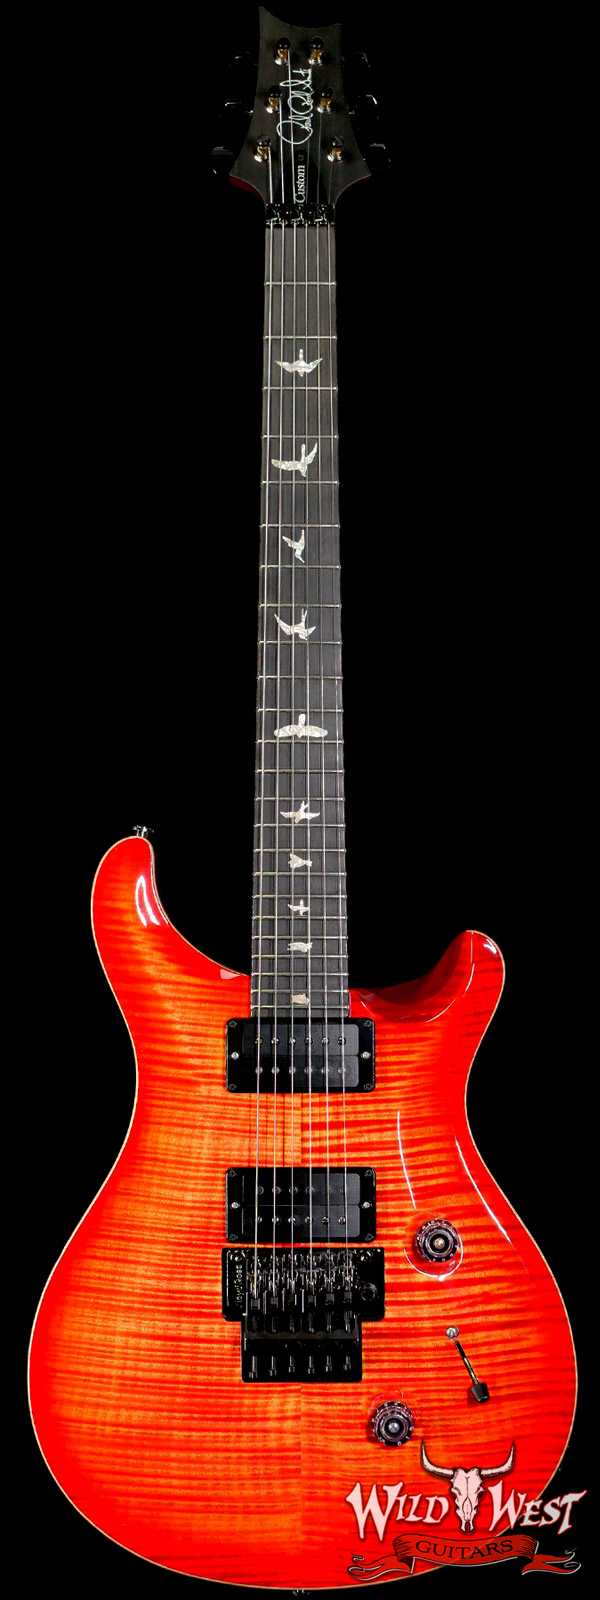 PRS Wood Library 10 Top Custom 24 Floyd Rose Ebony Fingerboard AAA Flame Maple Neck Blood Orange